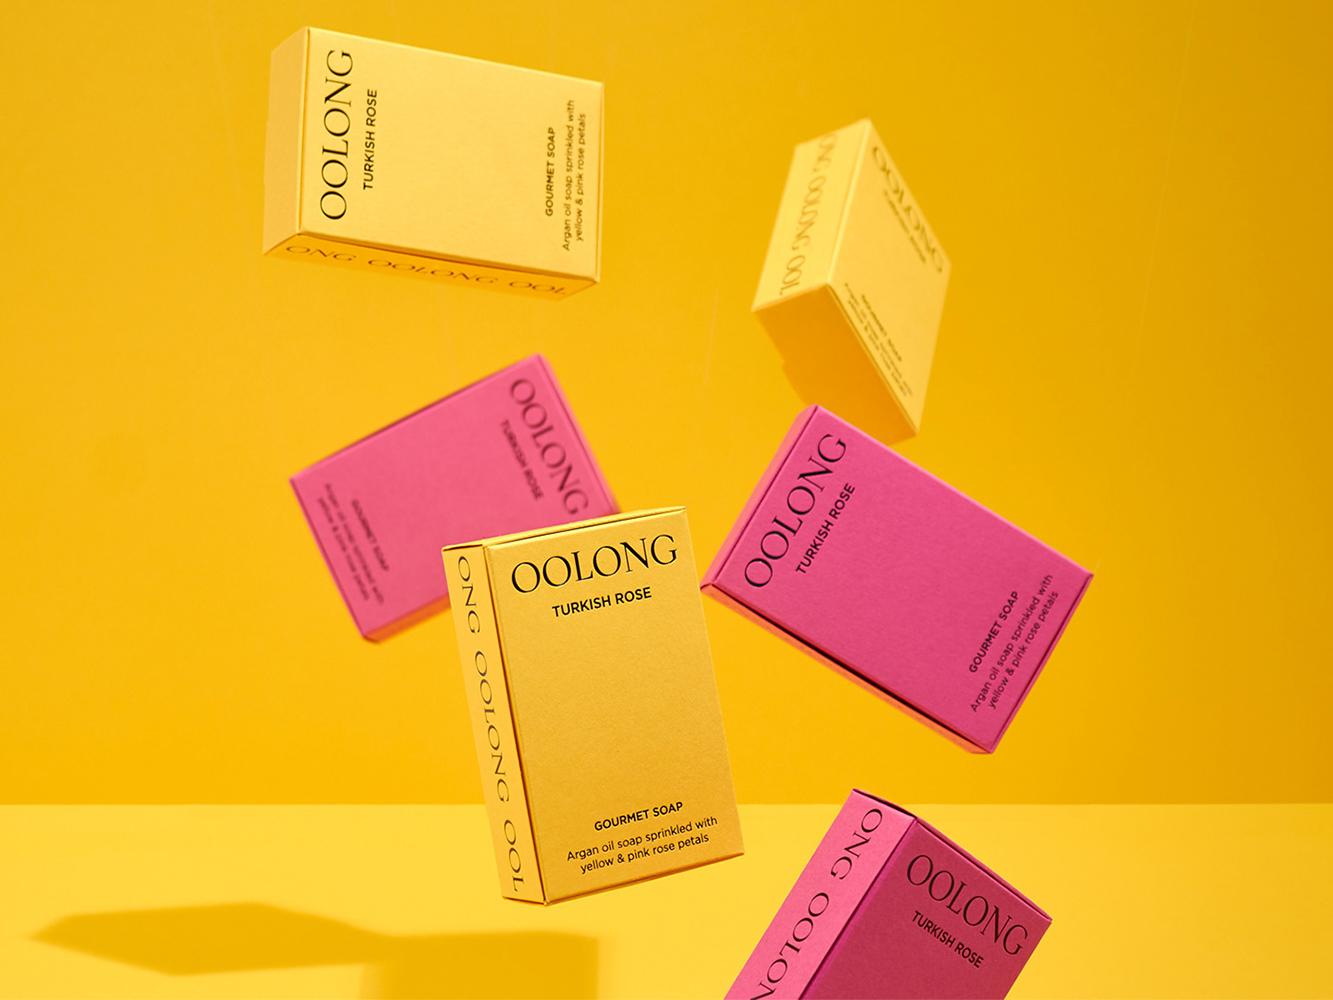 Cover image: Oolong: The luxury soap collection